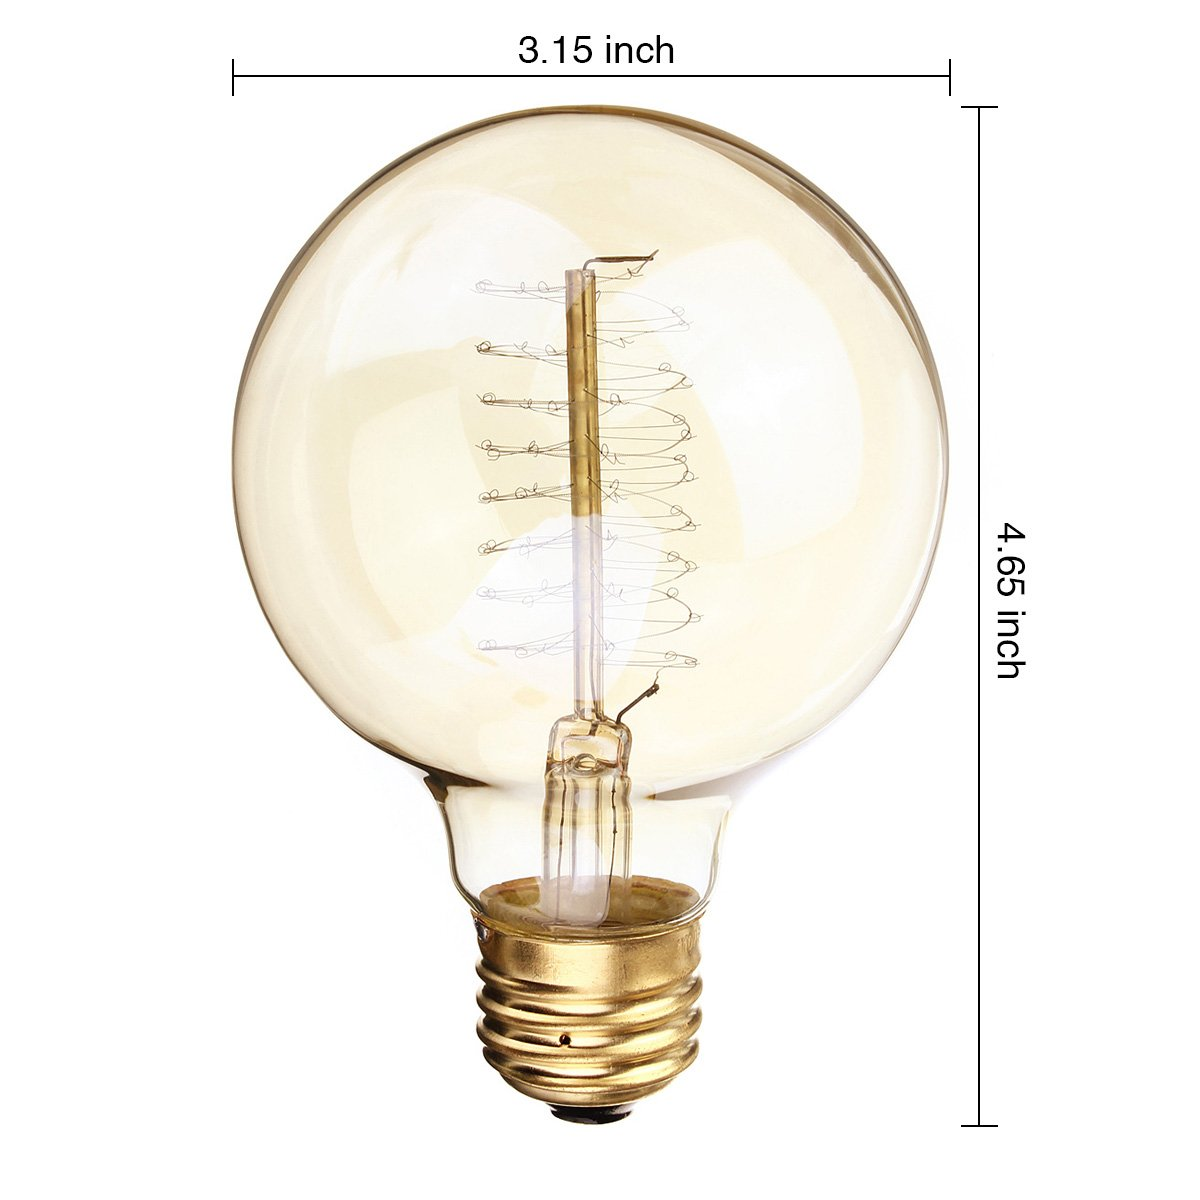 KINGSO Vintage Edison Bulb 60W Incandescent Antique Dimmable Light Bulb Dimmable for Home Light Fixtures Squirrel Cage Filament E27 Base G80 110V (4 Pack) 4